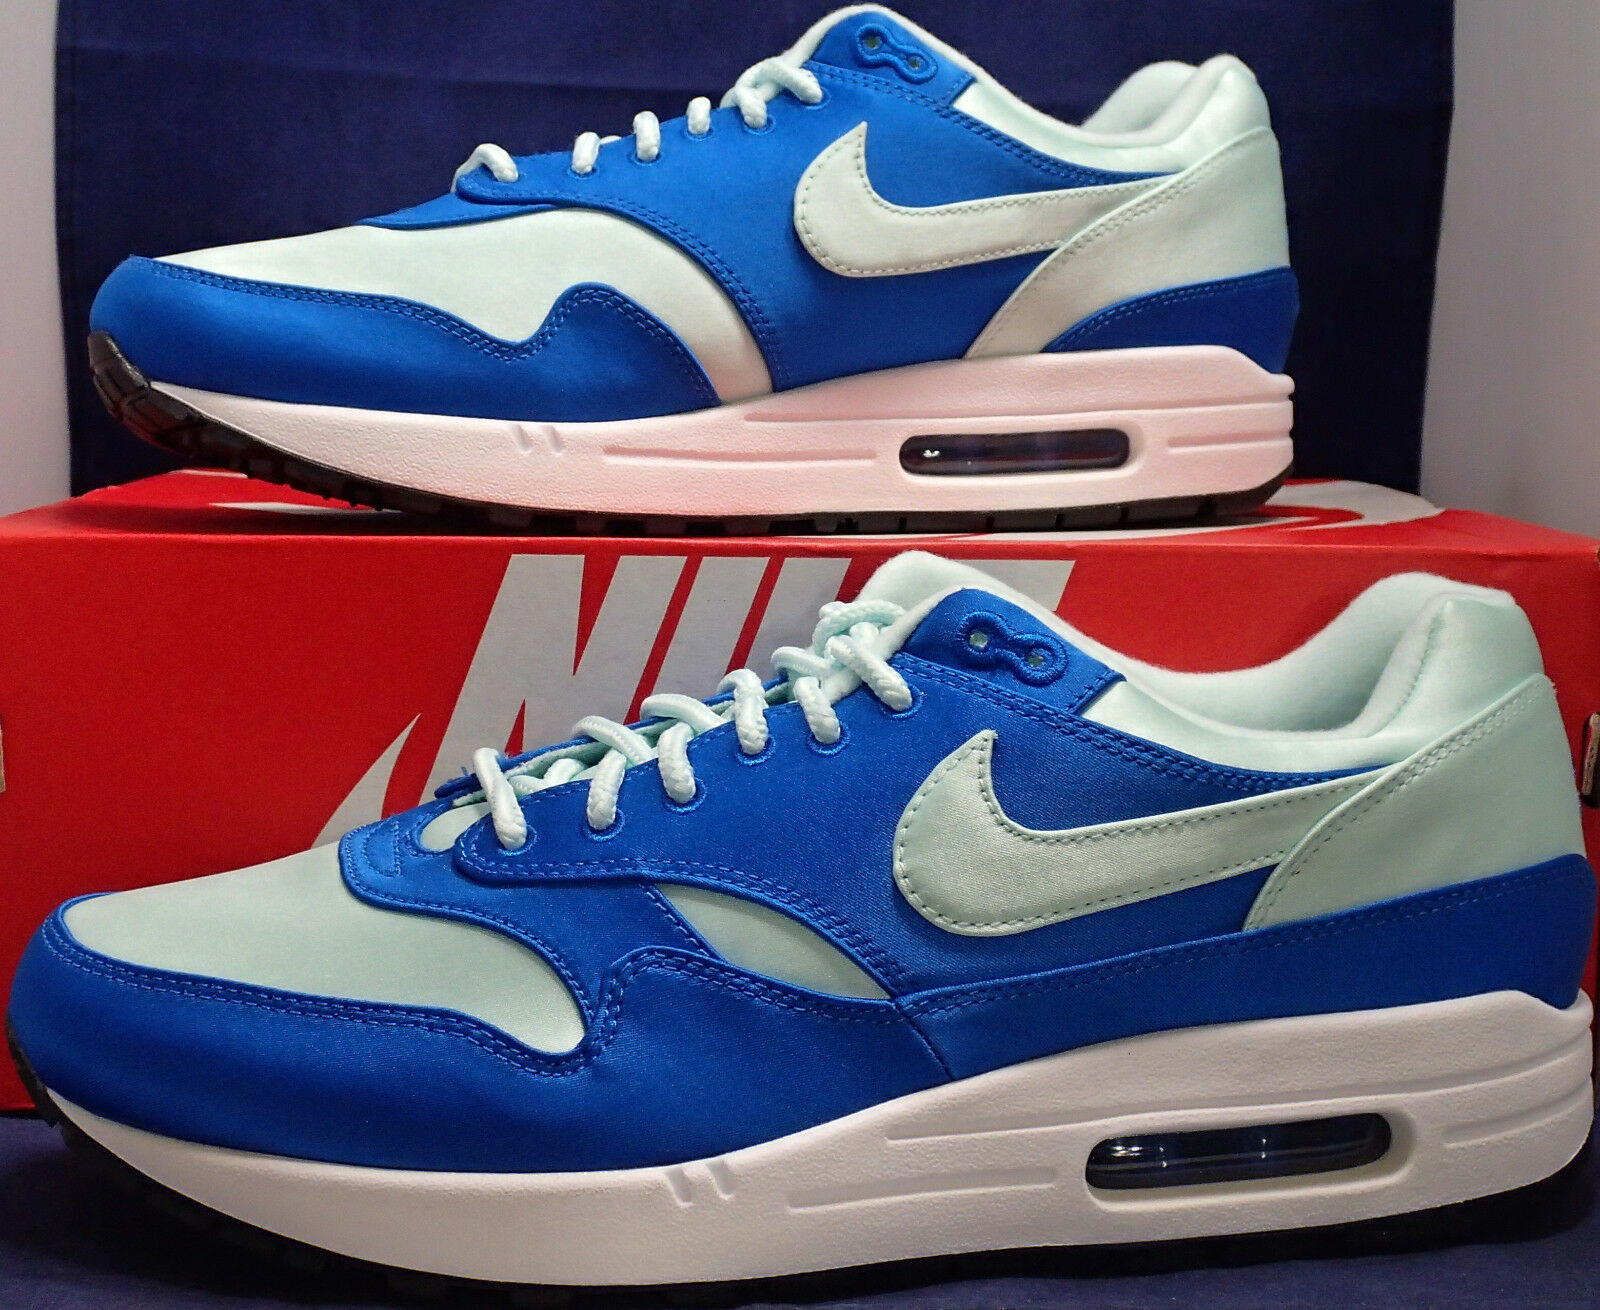 nike igloo air max 1 se satin nébuleuse bleue igloo nike blanc sz 10 (ao1021-400) c25bad